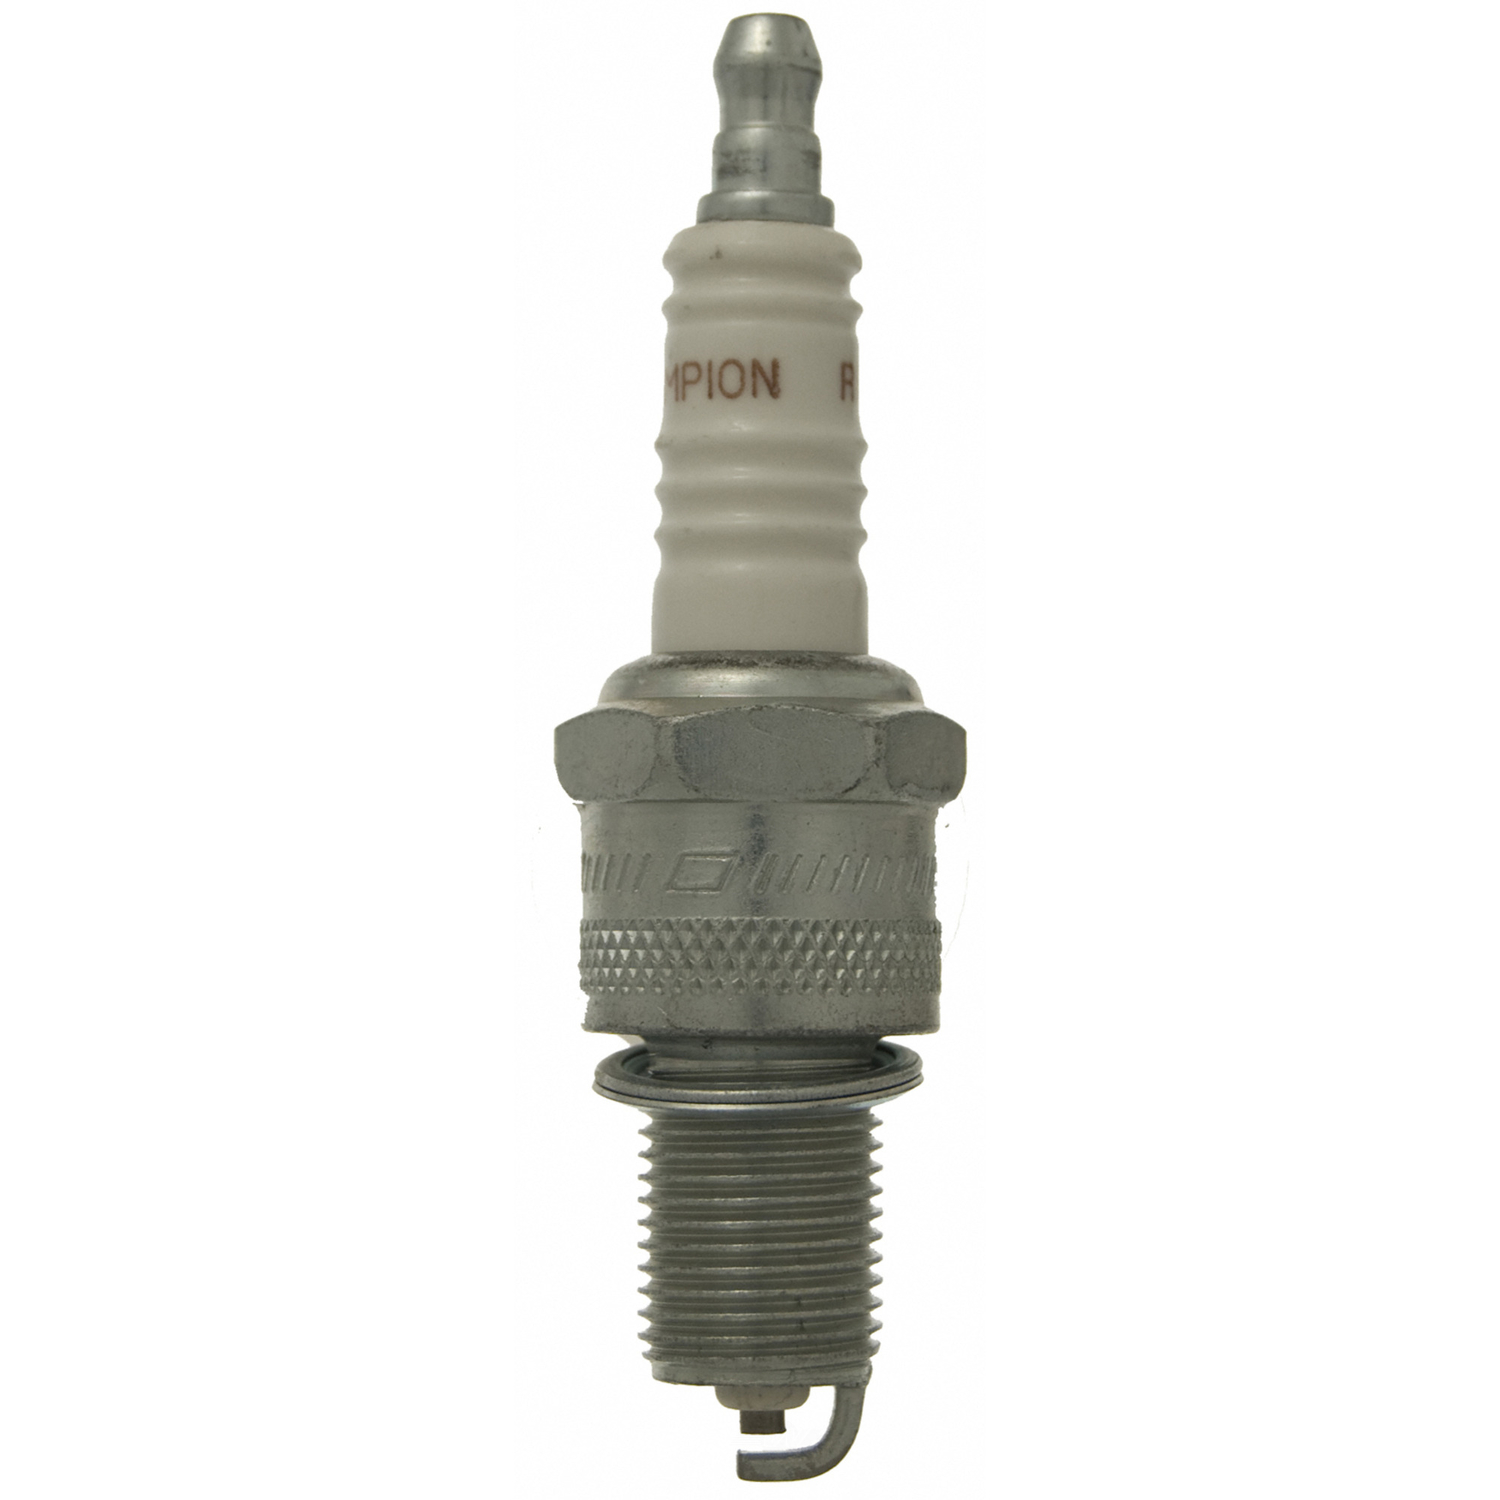 CHAMPION SPARK PLUGS - Copper Plus Spark Plug - CHA 38